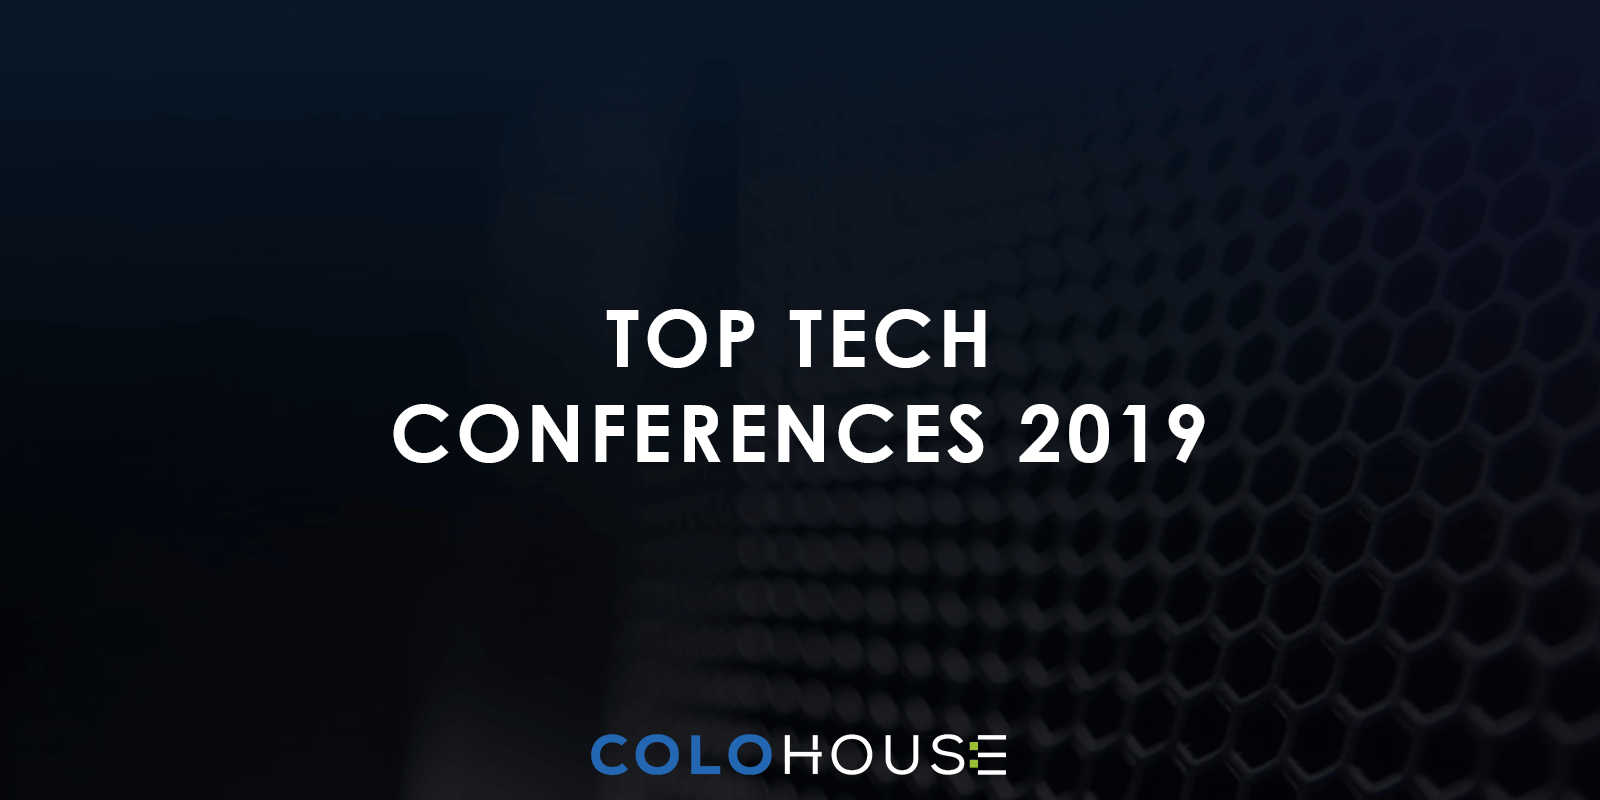 blog title: top tech conferences 2019